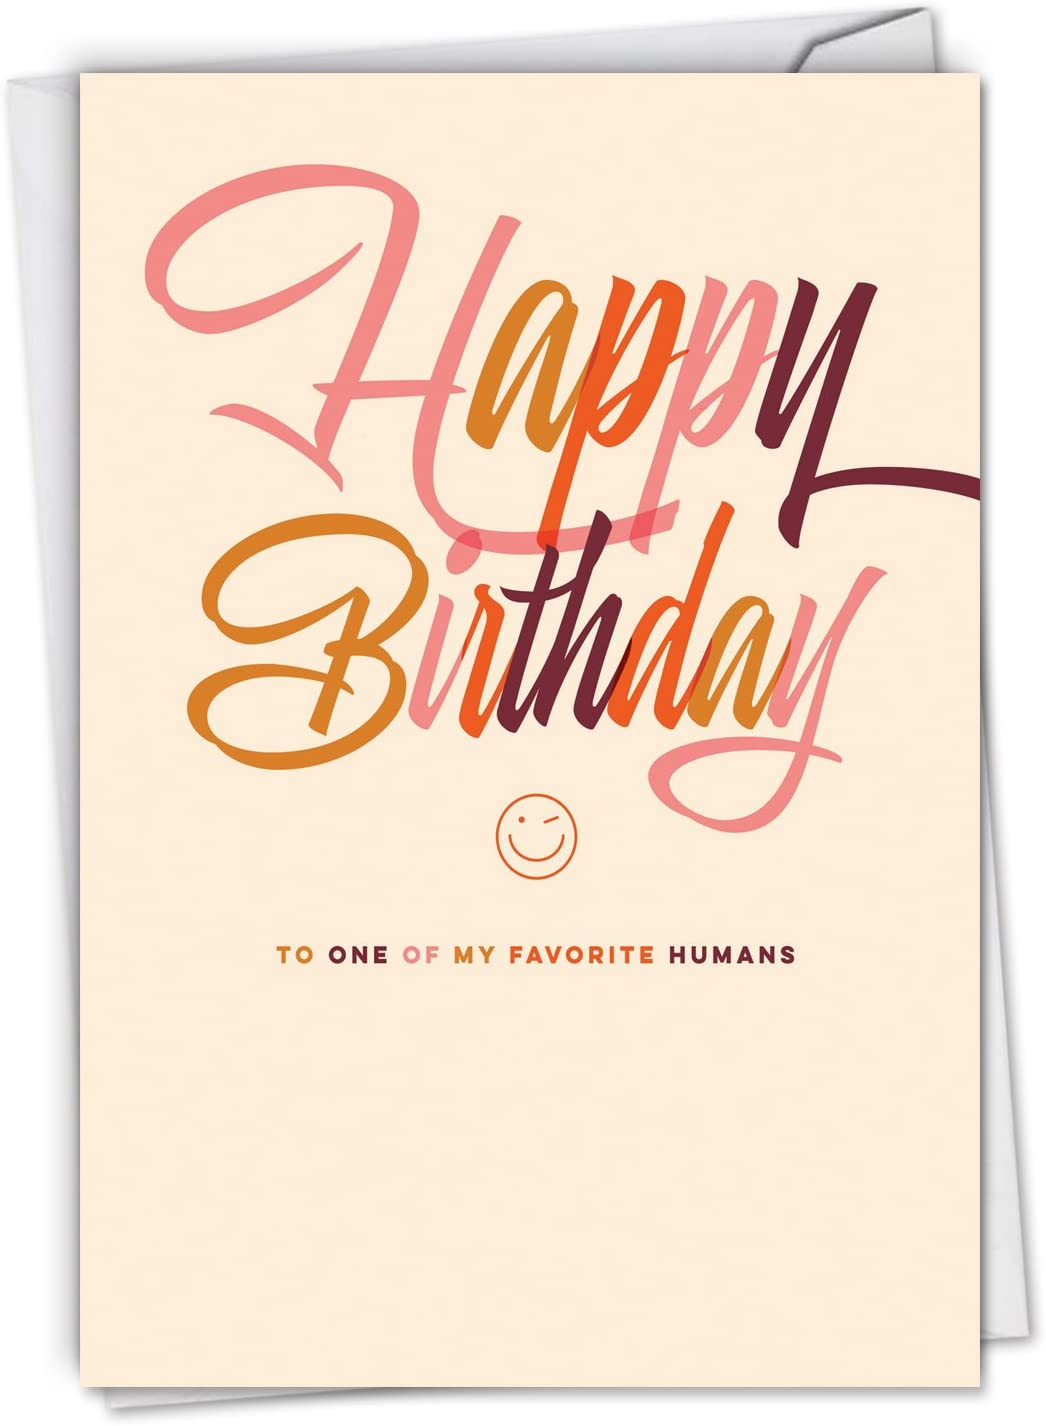 Favorite Human - Happy Birthday Note Card with Envelope (4.63 x 6.75 Inch) - Bday Celebration Card for Women, Men - Cute Stationery Notecard for Birthdays, Congratulations C6408BDG